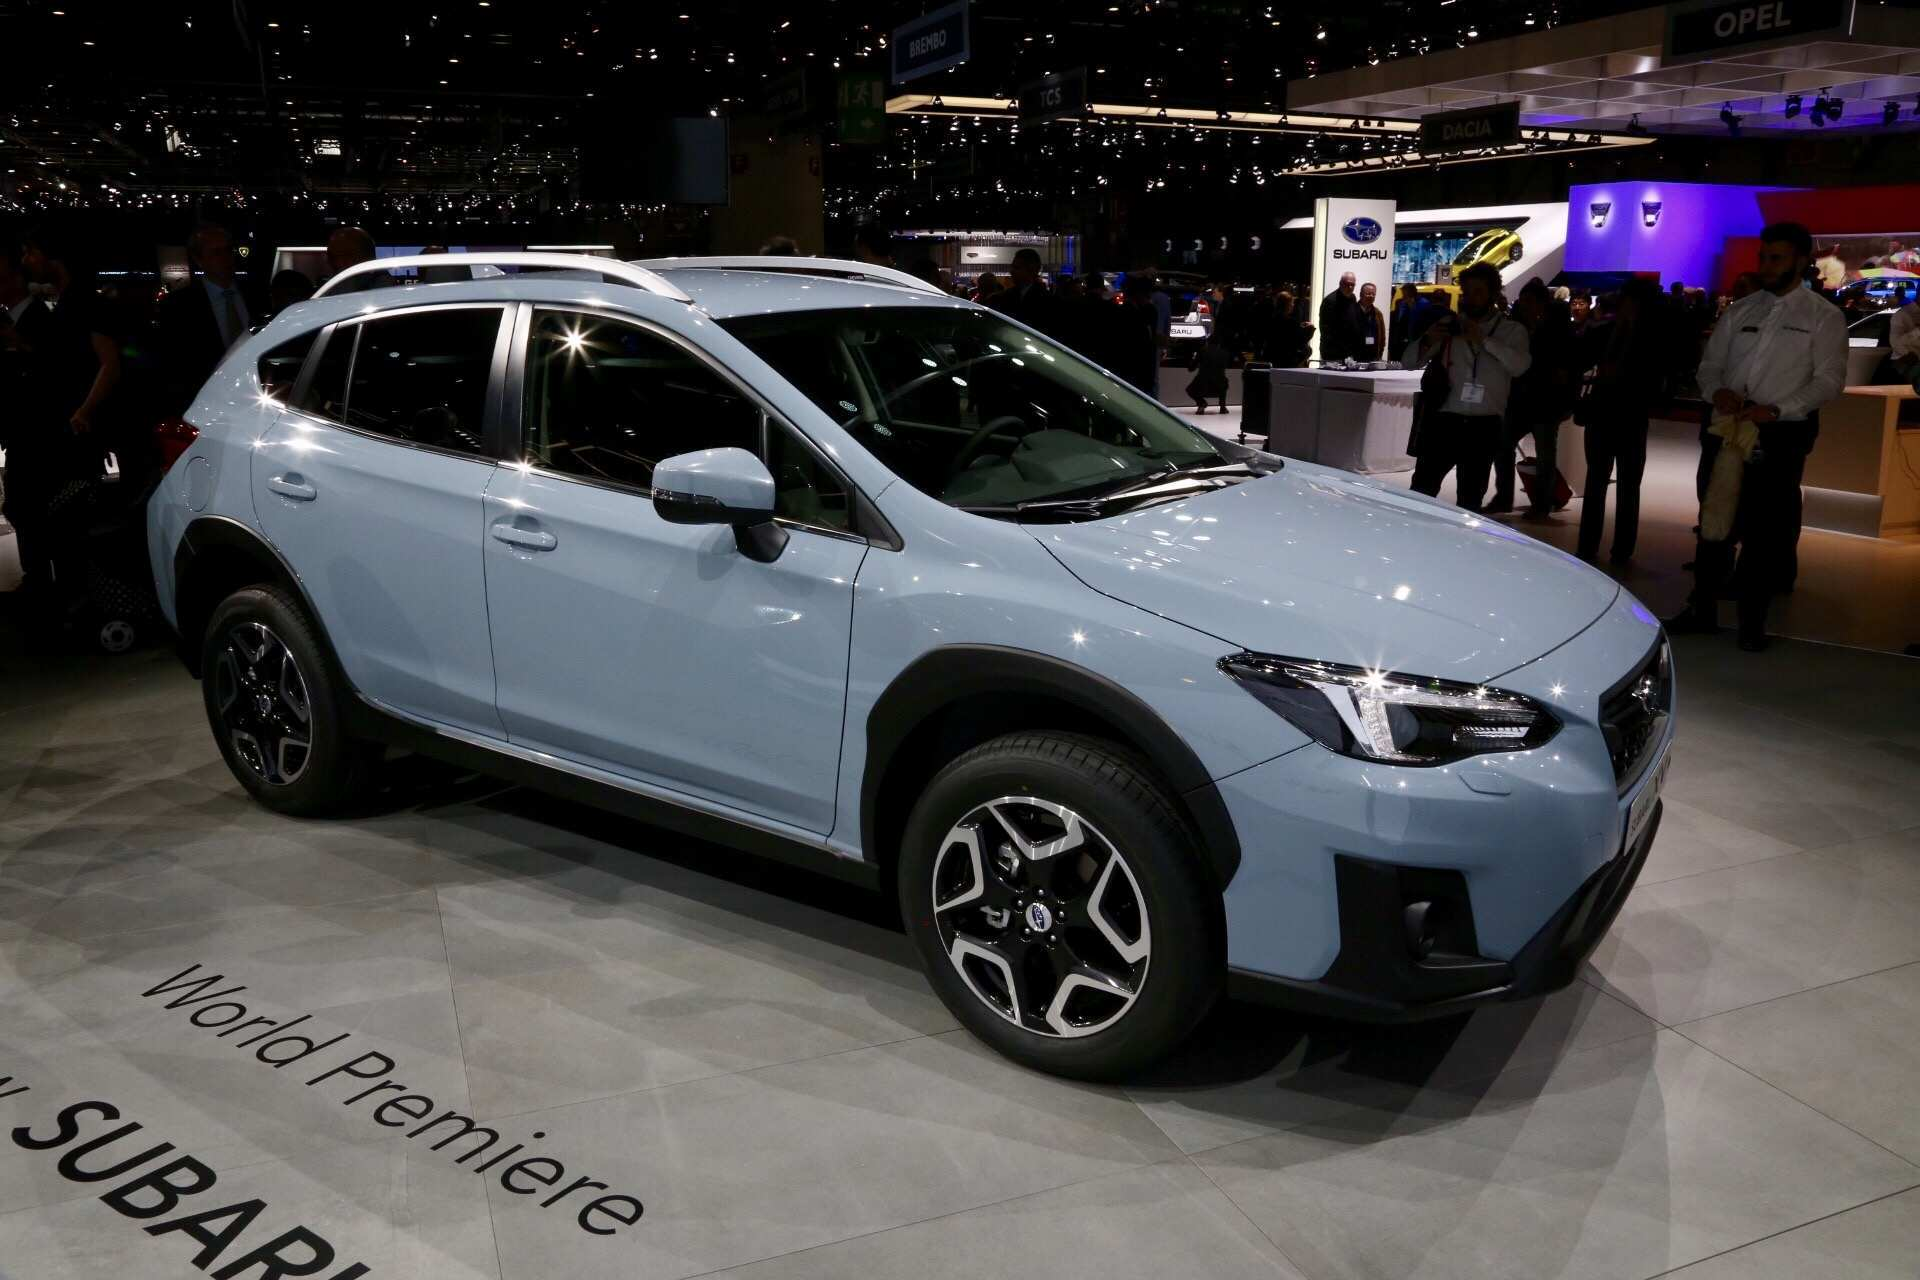 56 All New Subaru Crosstrek 2020 Canada Redesign and Concept for Subaru Crosstrek 2020 Canada